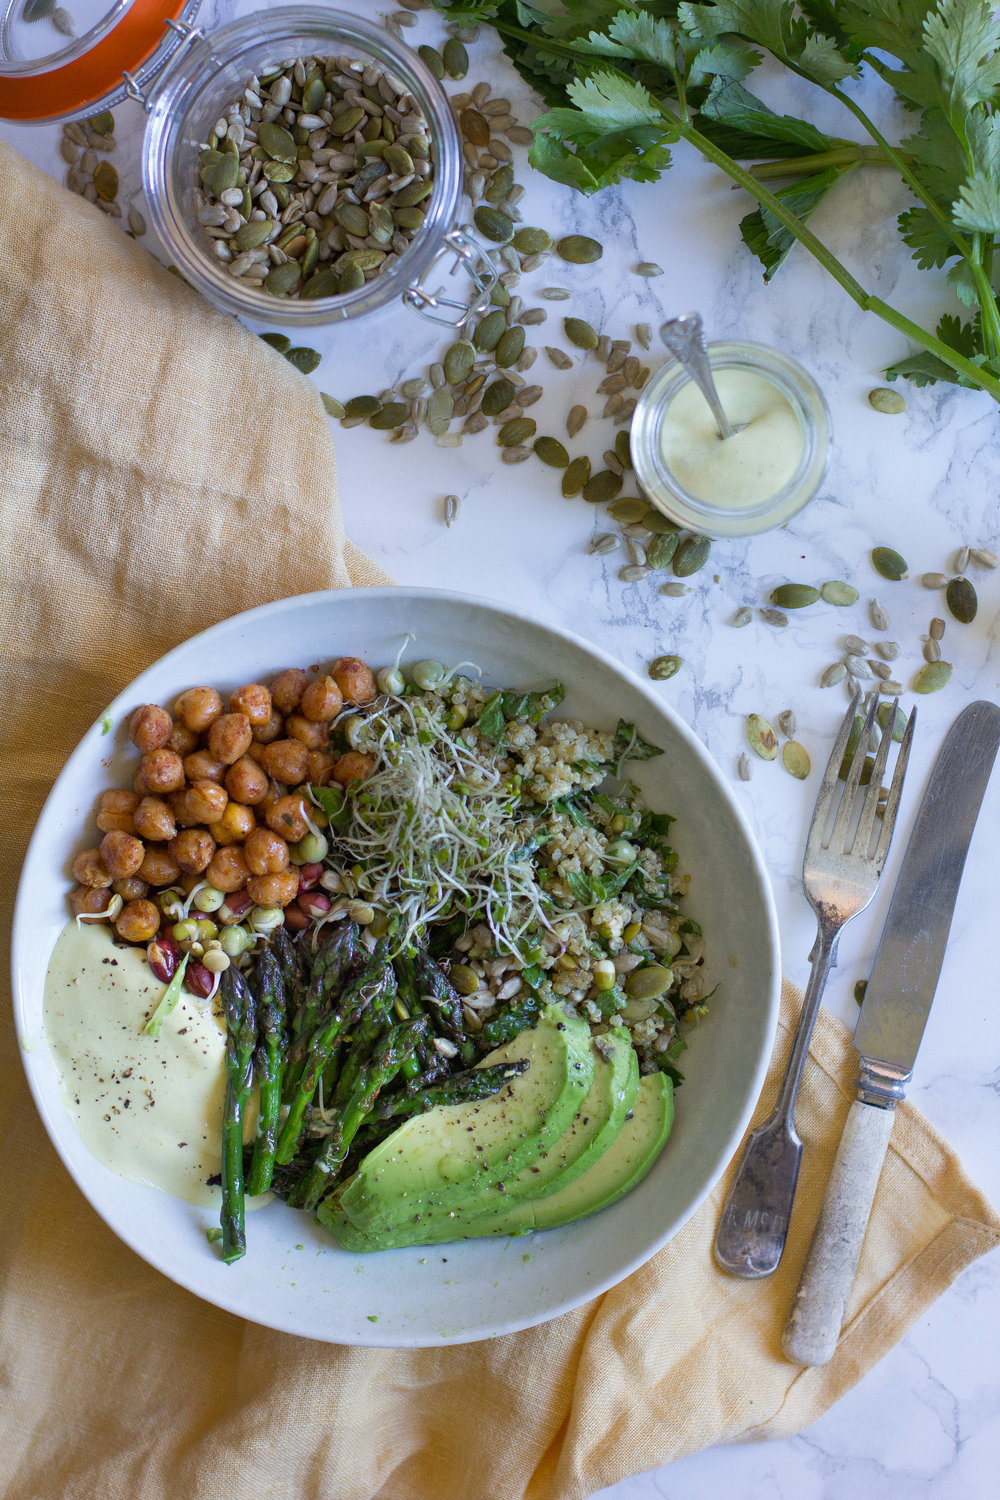 Creamy, healthy, and positively virtuous - buddha bowls to feed your growling tummy and your soul